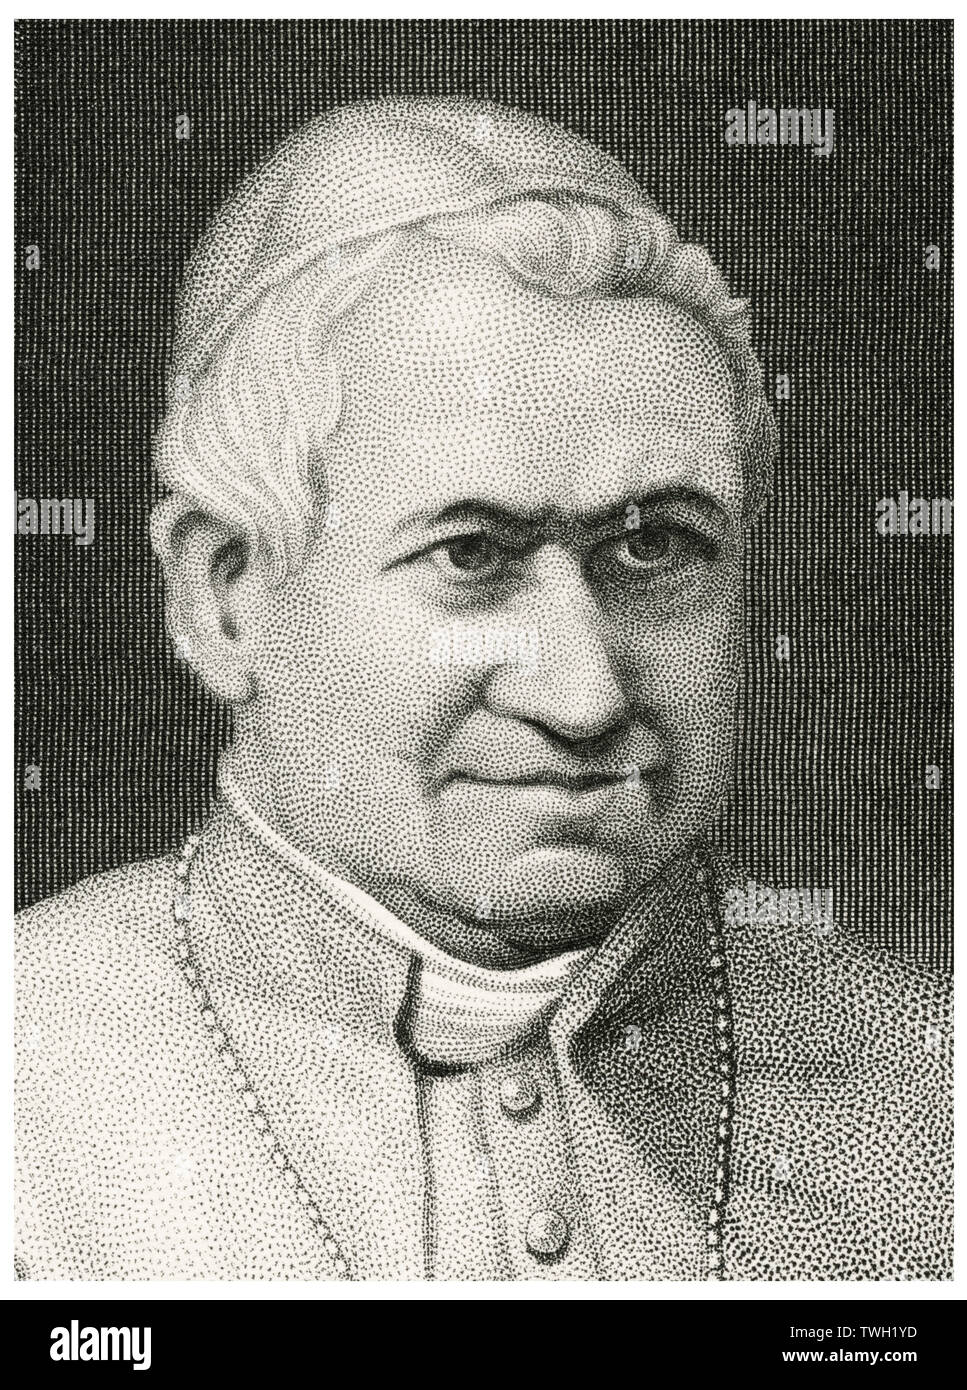 Pope Pius IX (1792-1878), Head of Catholic Church 1846-78, Head and Shoulders Portrait, Steel Engraving, Portrait Gallery of Eminent Men and Women of Europe and America by Evert A. Duyckinck, Published by Henry J. Johnson, Johnson, Wilson & Company, New York, 1873 Stock Photo